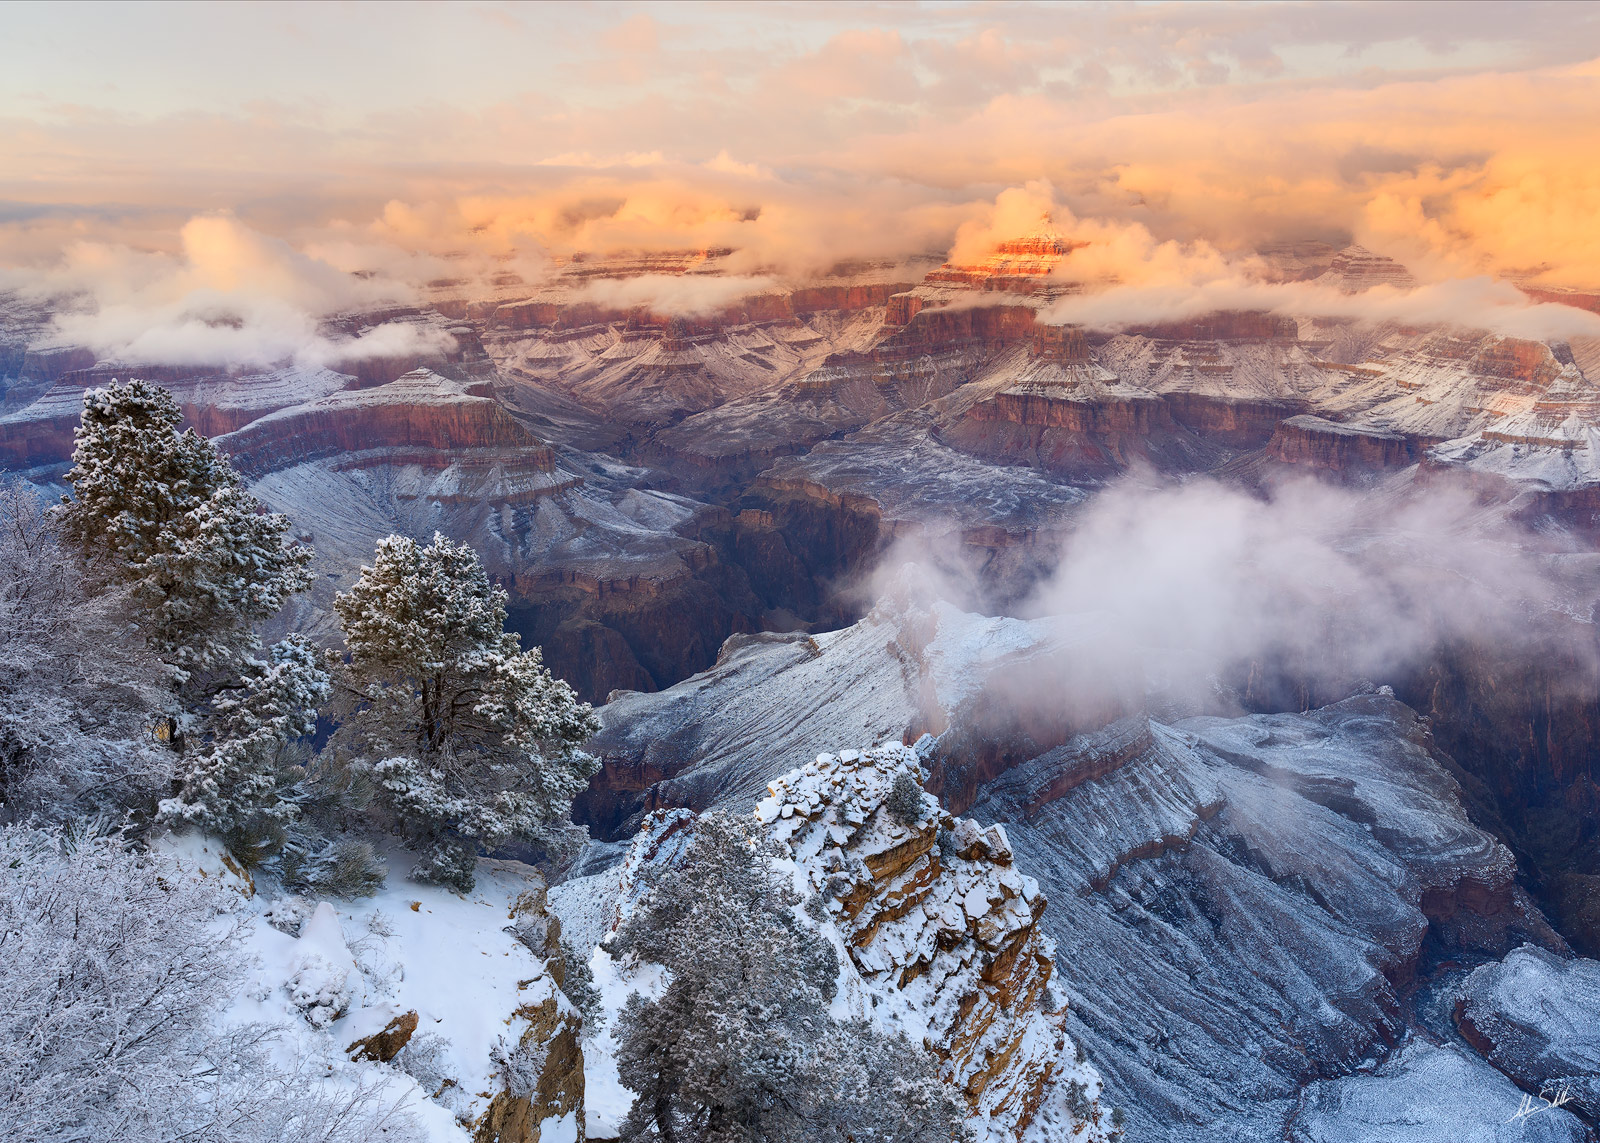 AZ, Arizona, Grand Canyon, Grand Canyon National Park, Grand Canyon Snow, Grand Canyon Winter, Isis Temple, National Park, Snow, Snow at the Grand Canyon, South Rim, South Rim of the Grand Canyon, Win, photo